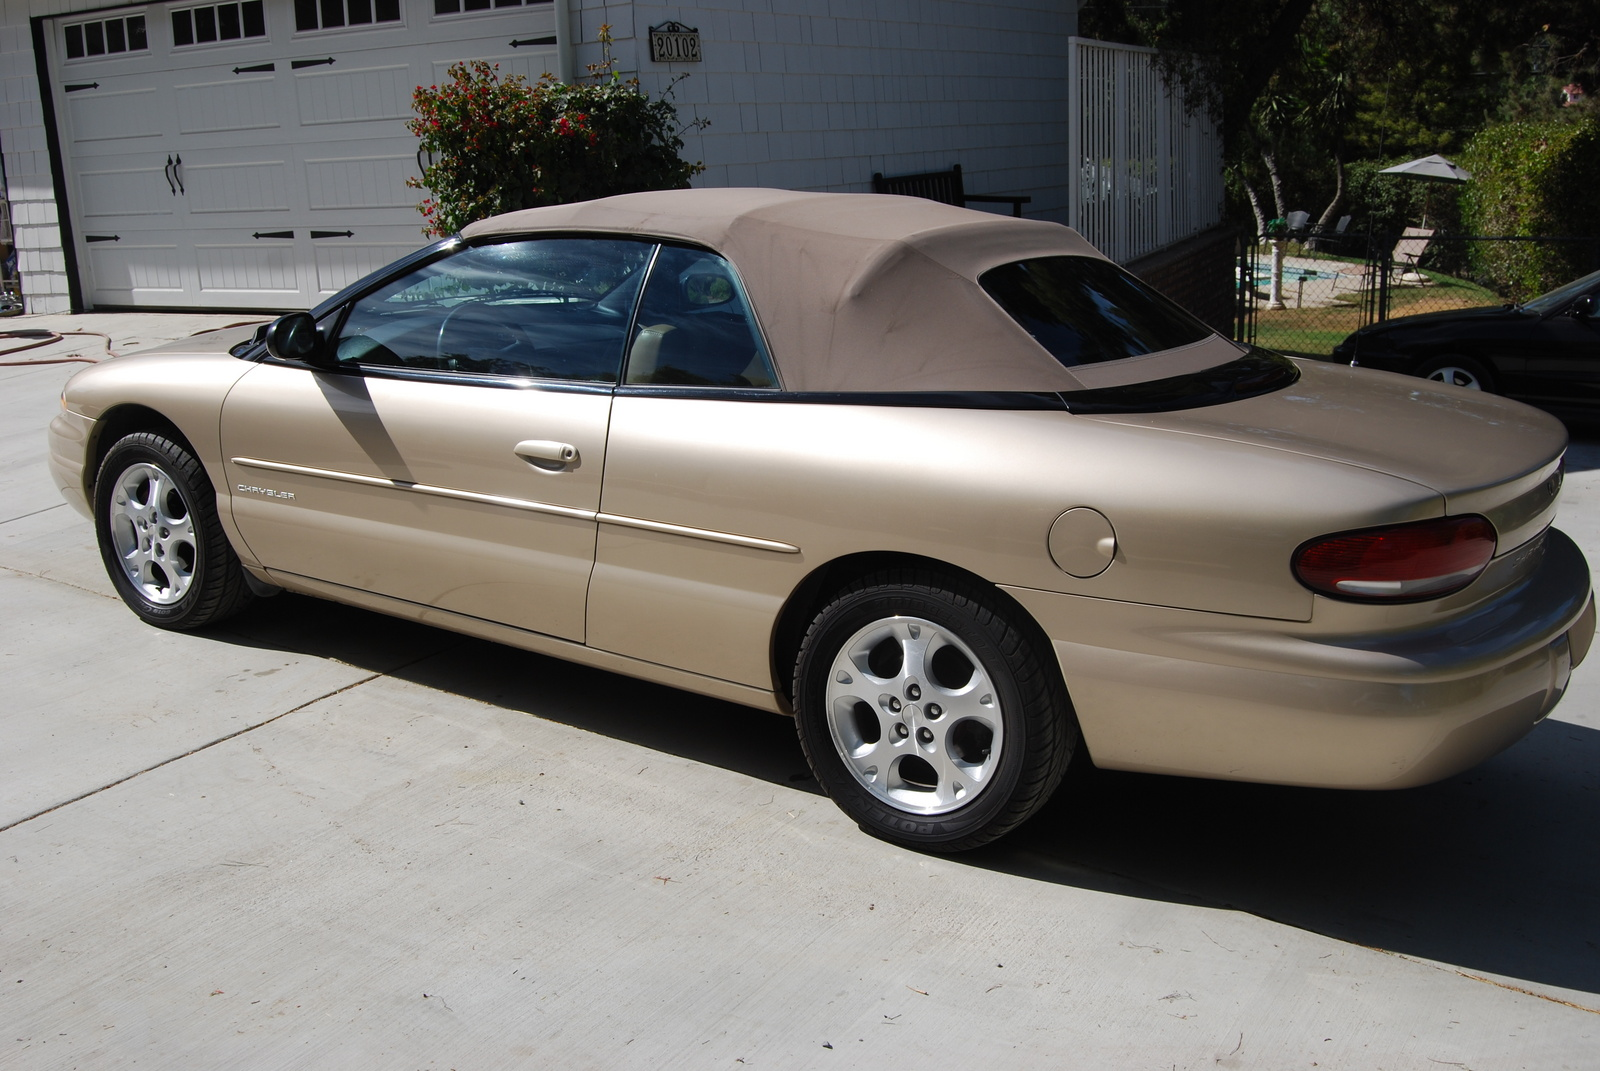 2000 Chrysler Sebring Pictures C1576 pi36102452 on chrysler sebring jxi limited convertible